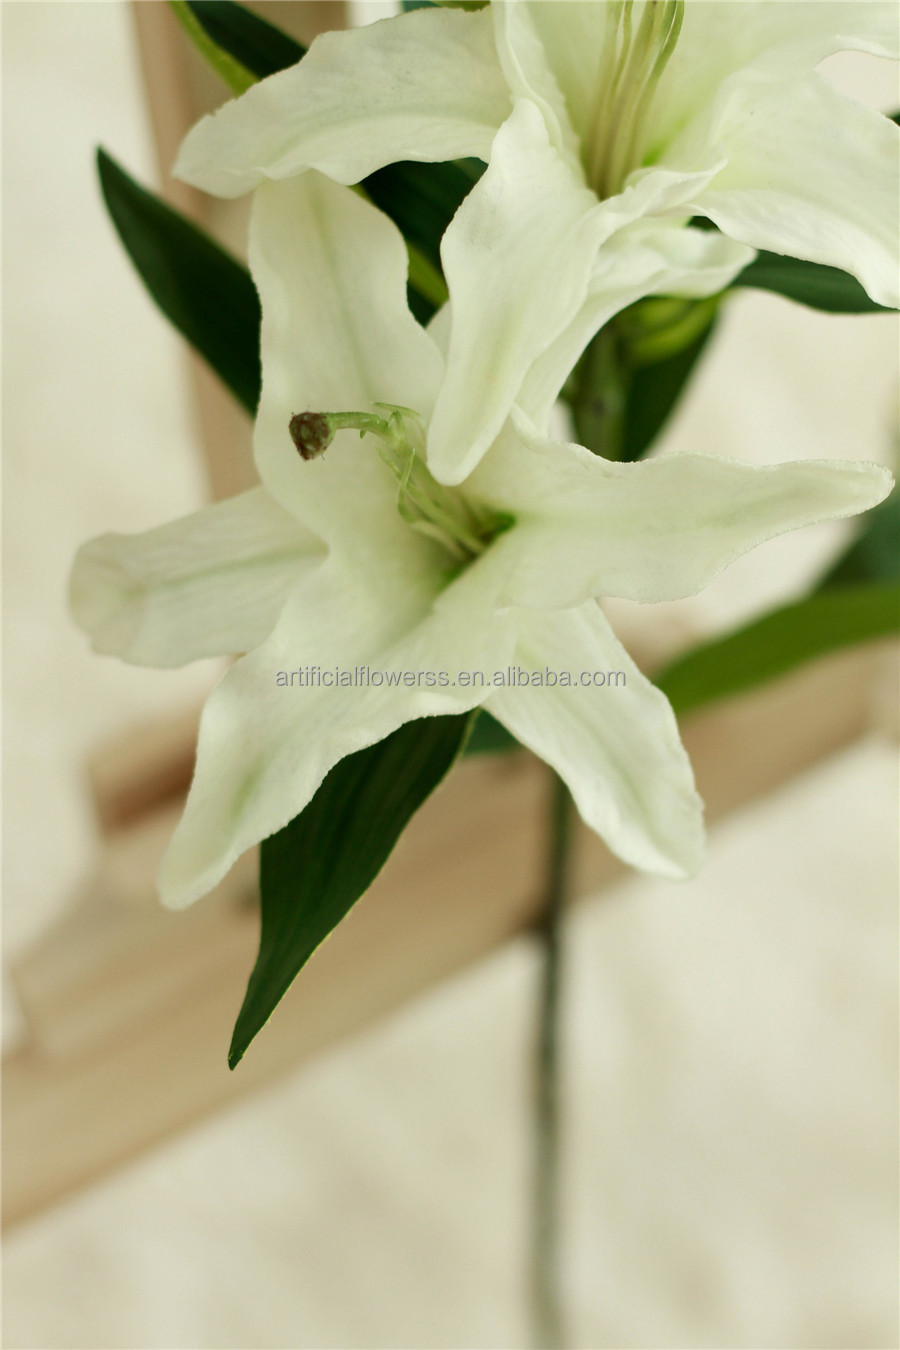 Fake white artificial lily flowers wholesale tiger lily buy lily fake white artificial lily flowers wholesale tiger lily izmirmasajfo